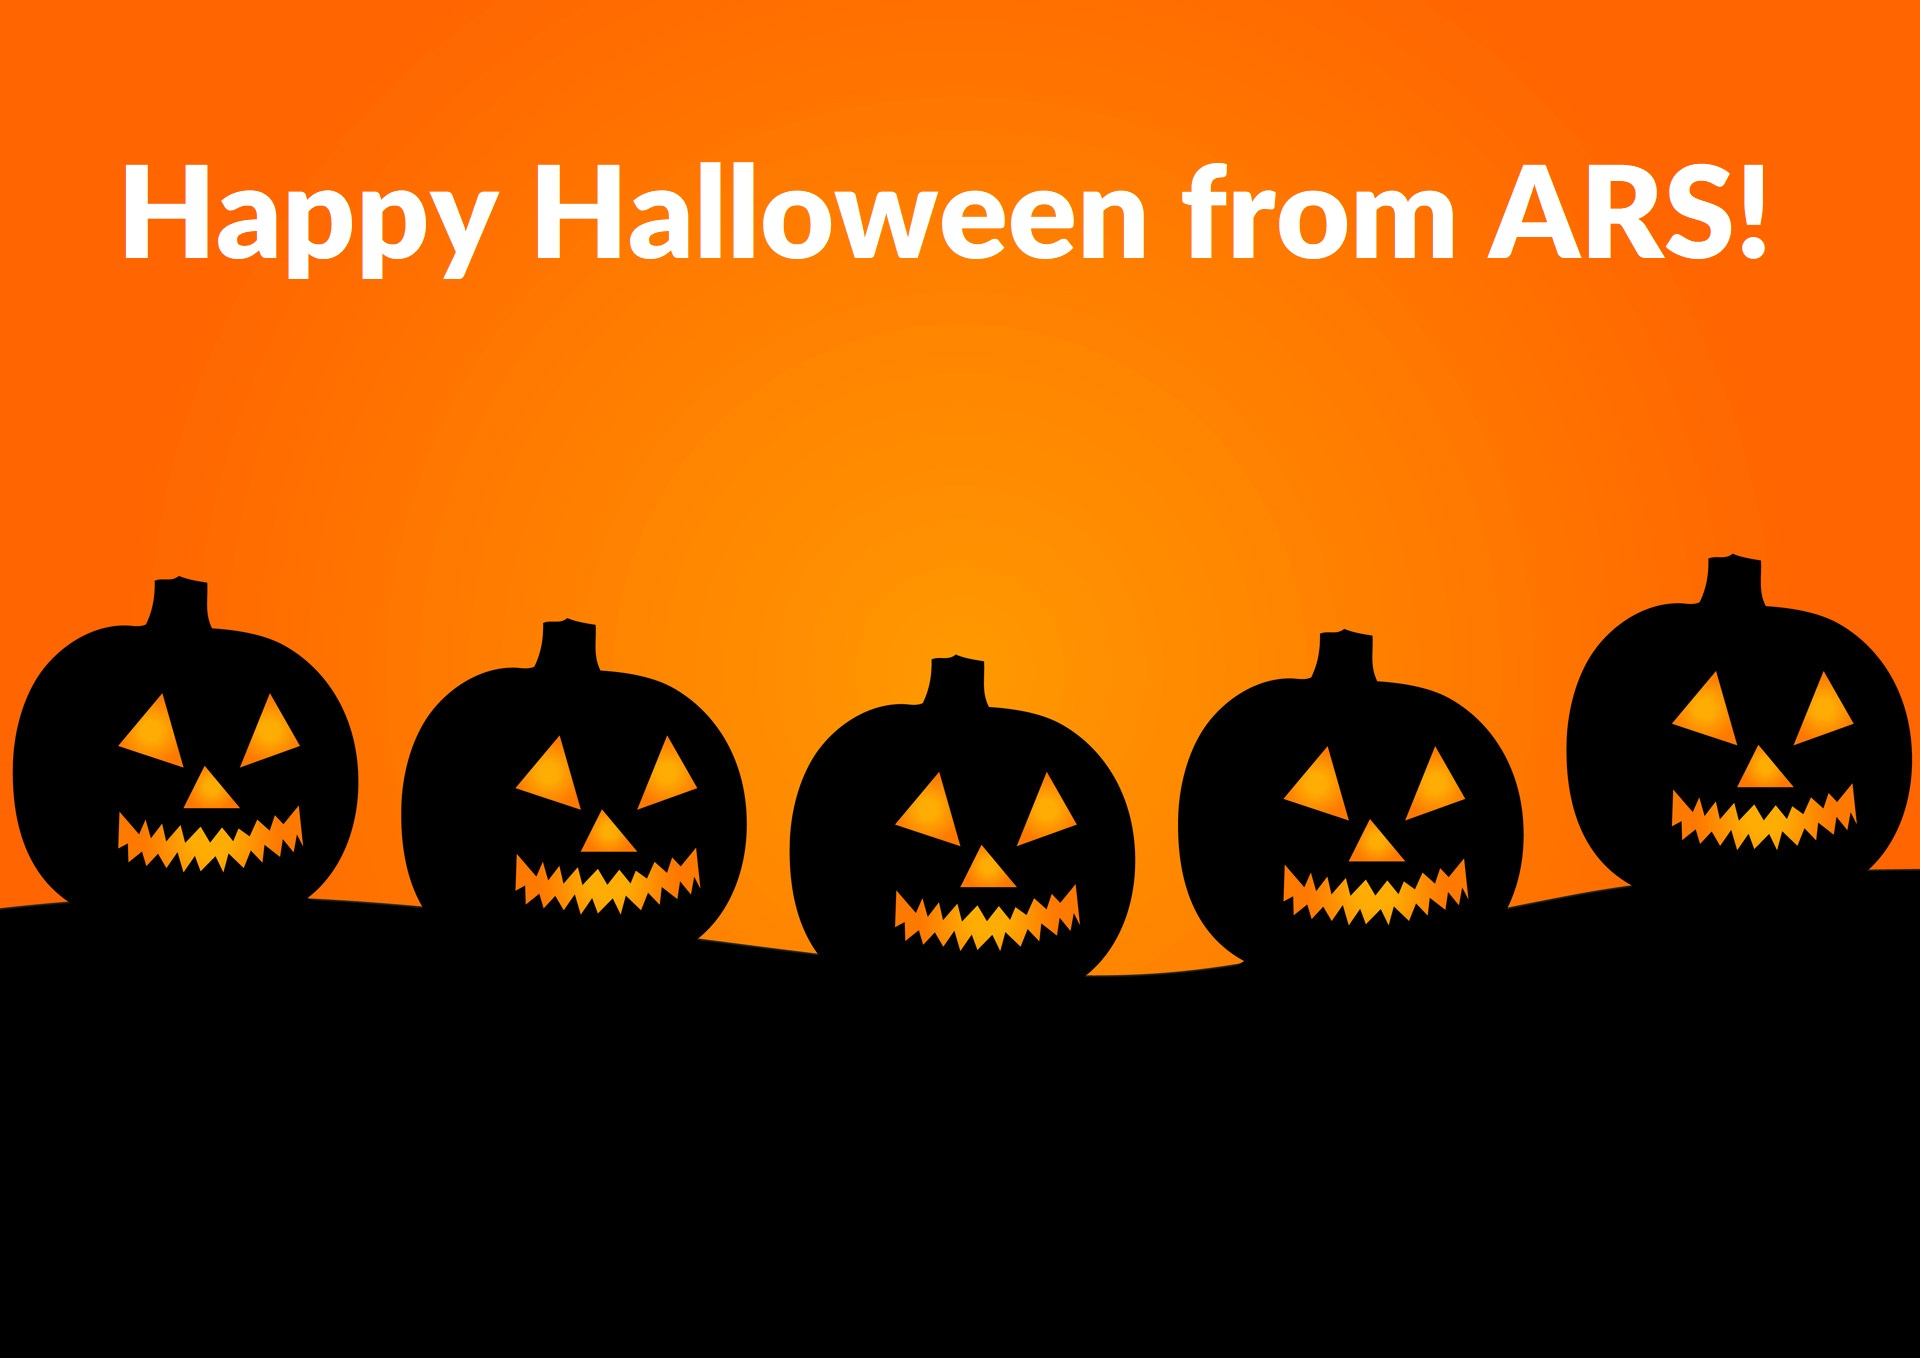 A Wicked Advanced Remarketing Services Halloween